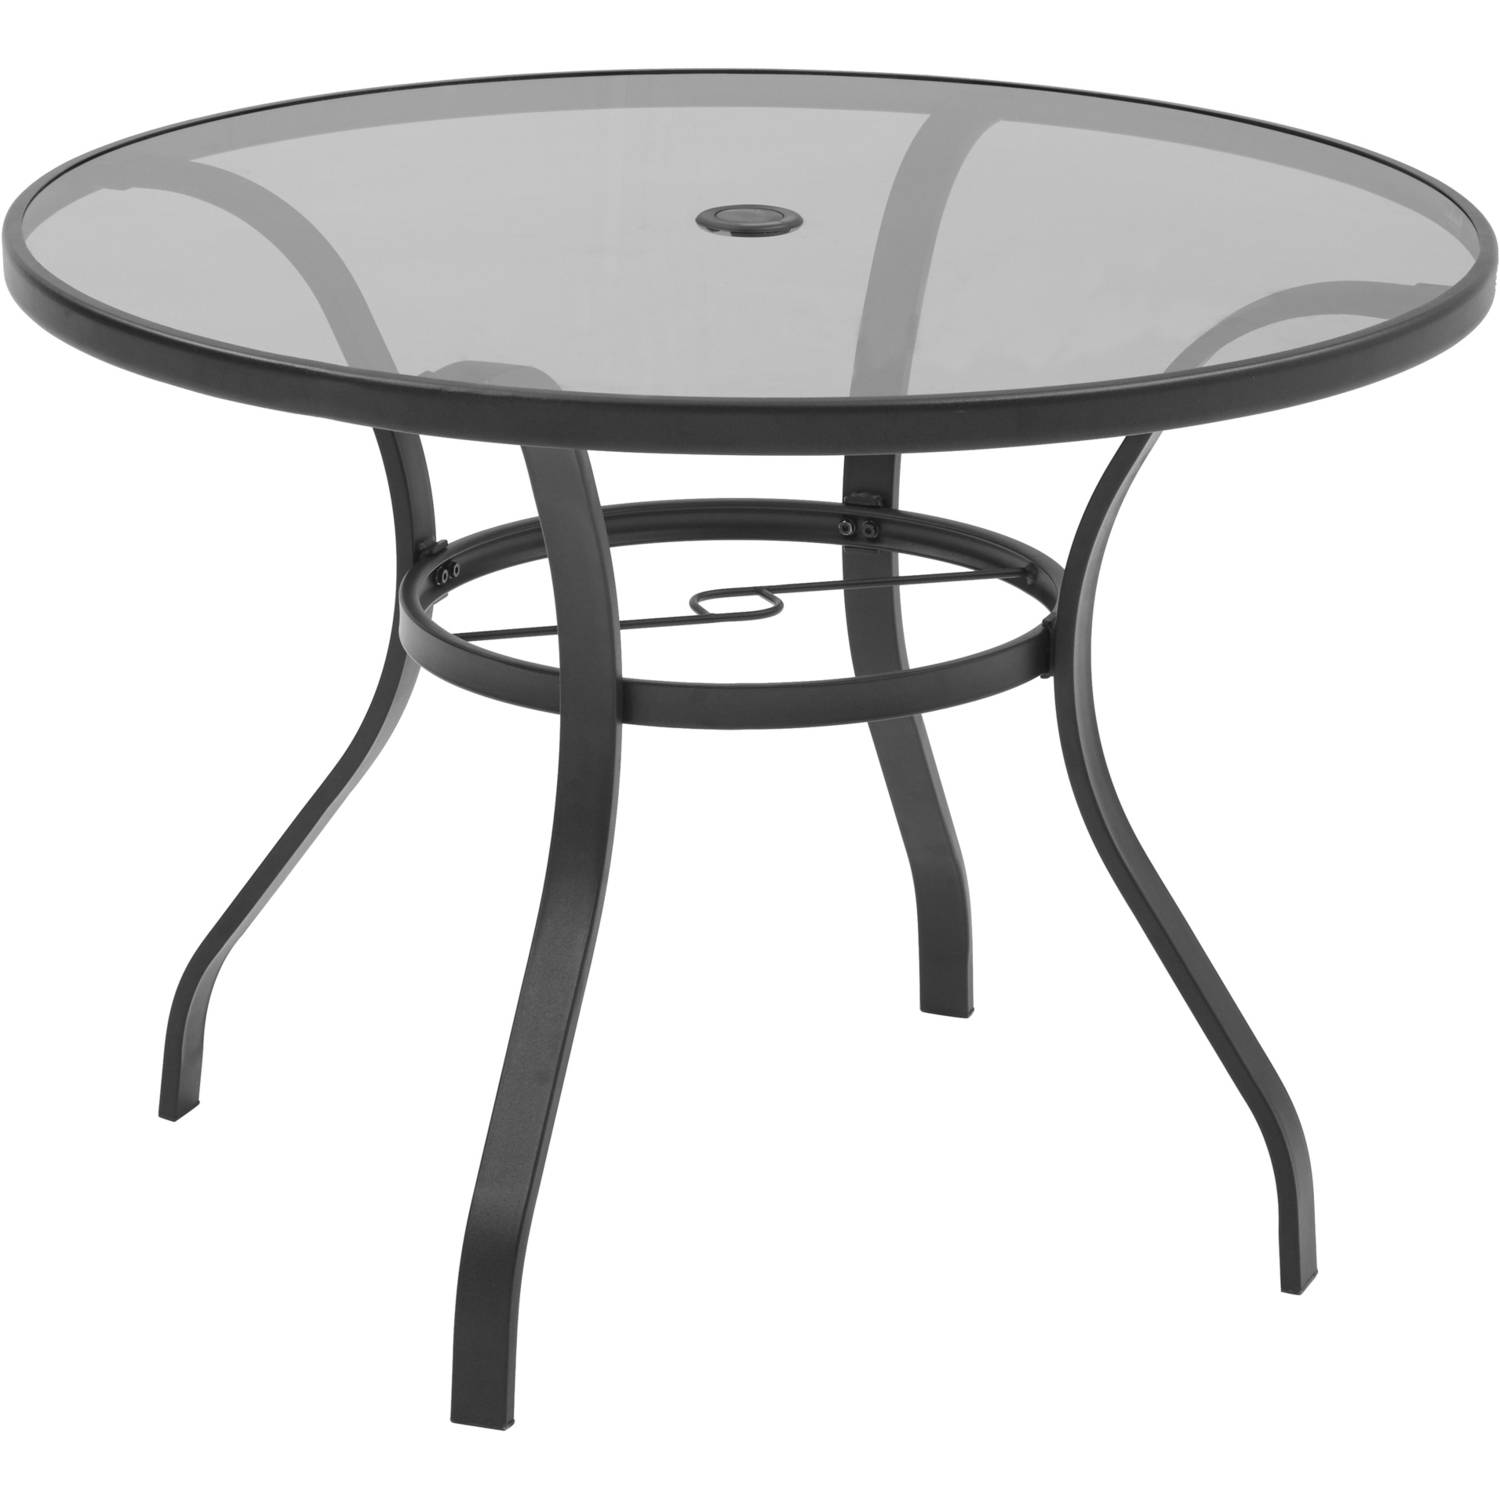 Mainstays Heritage Park Round Dining Table, Brown - Walmart.com